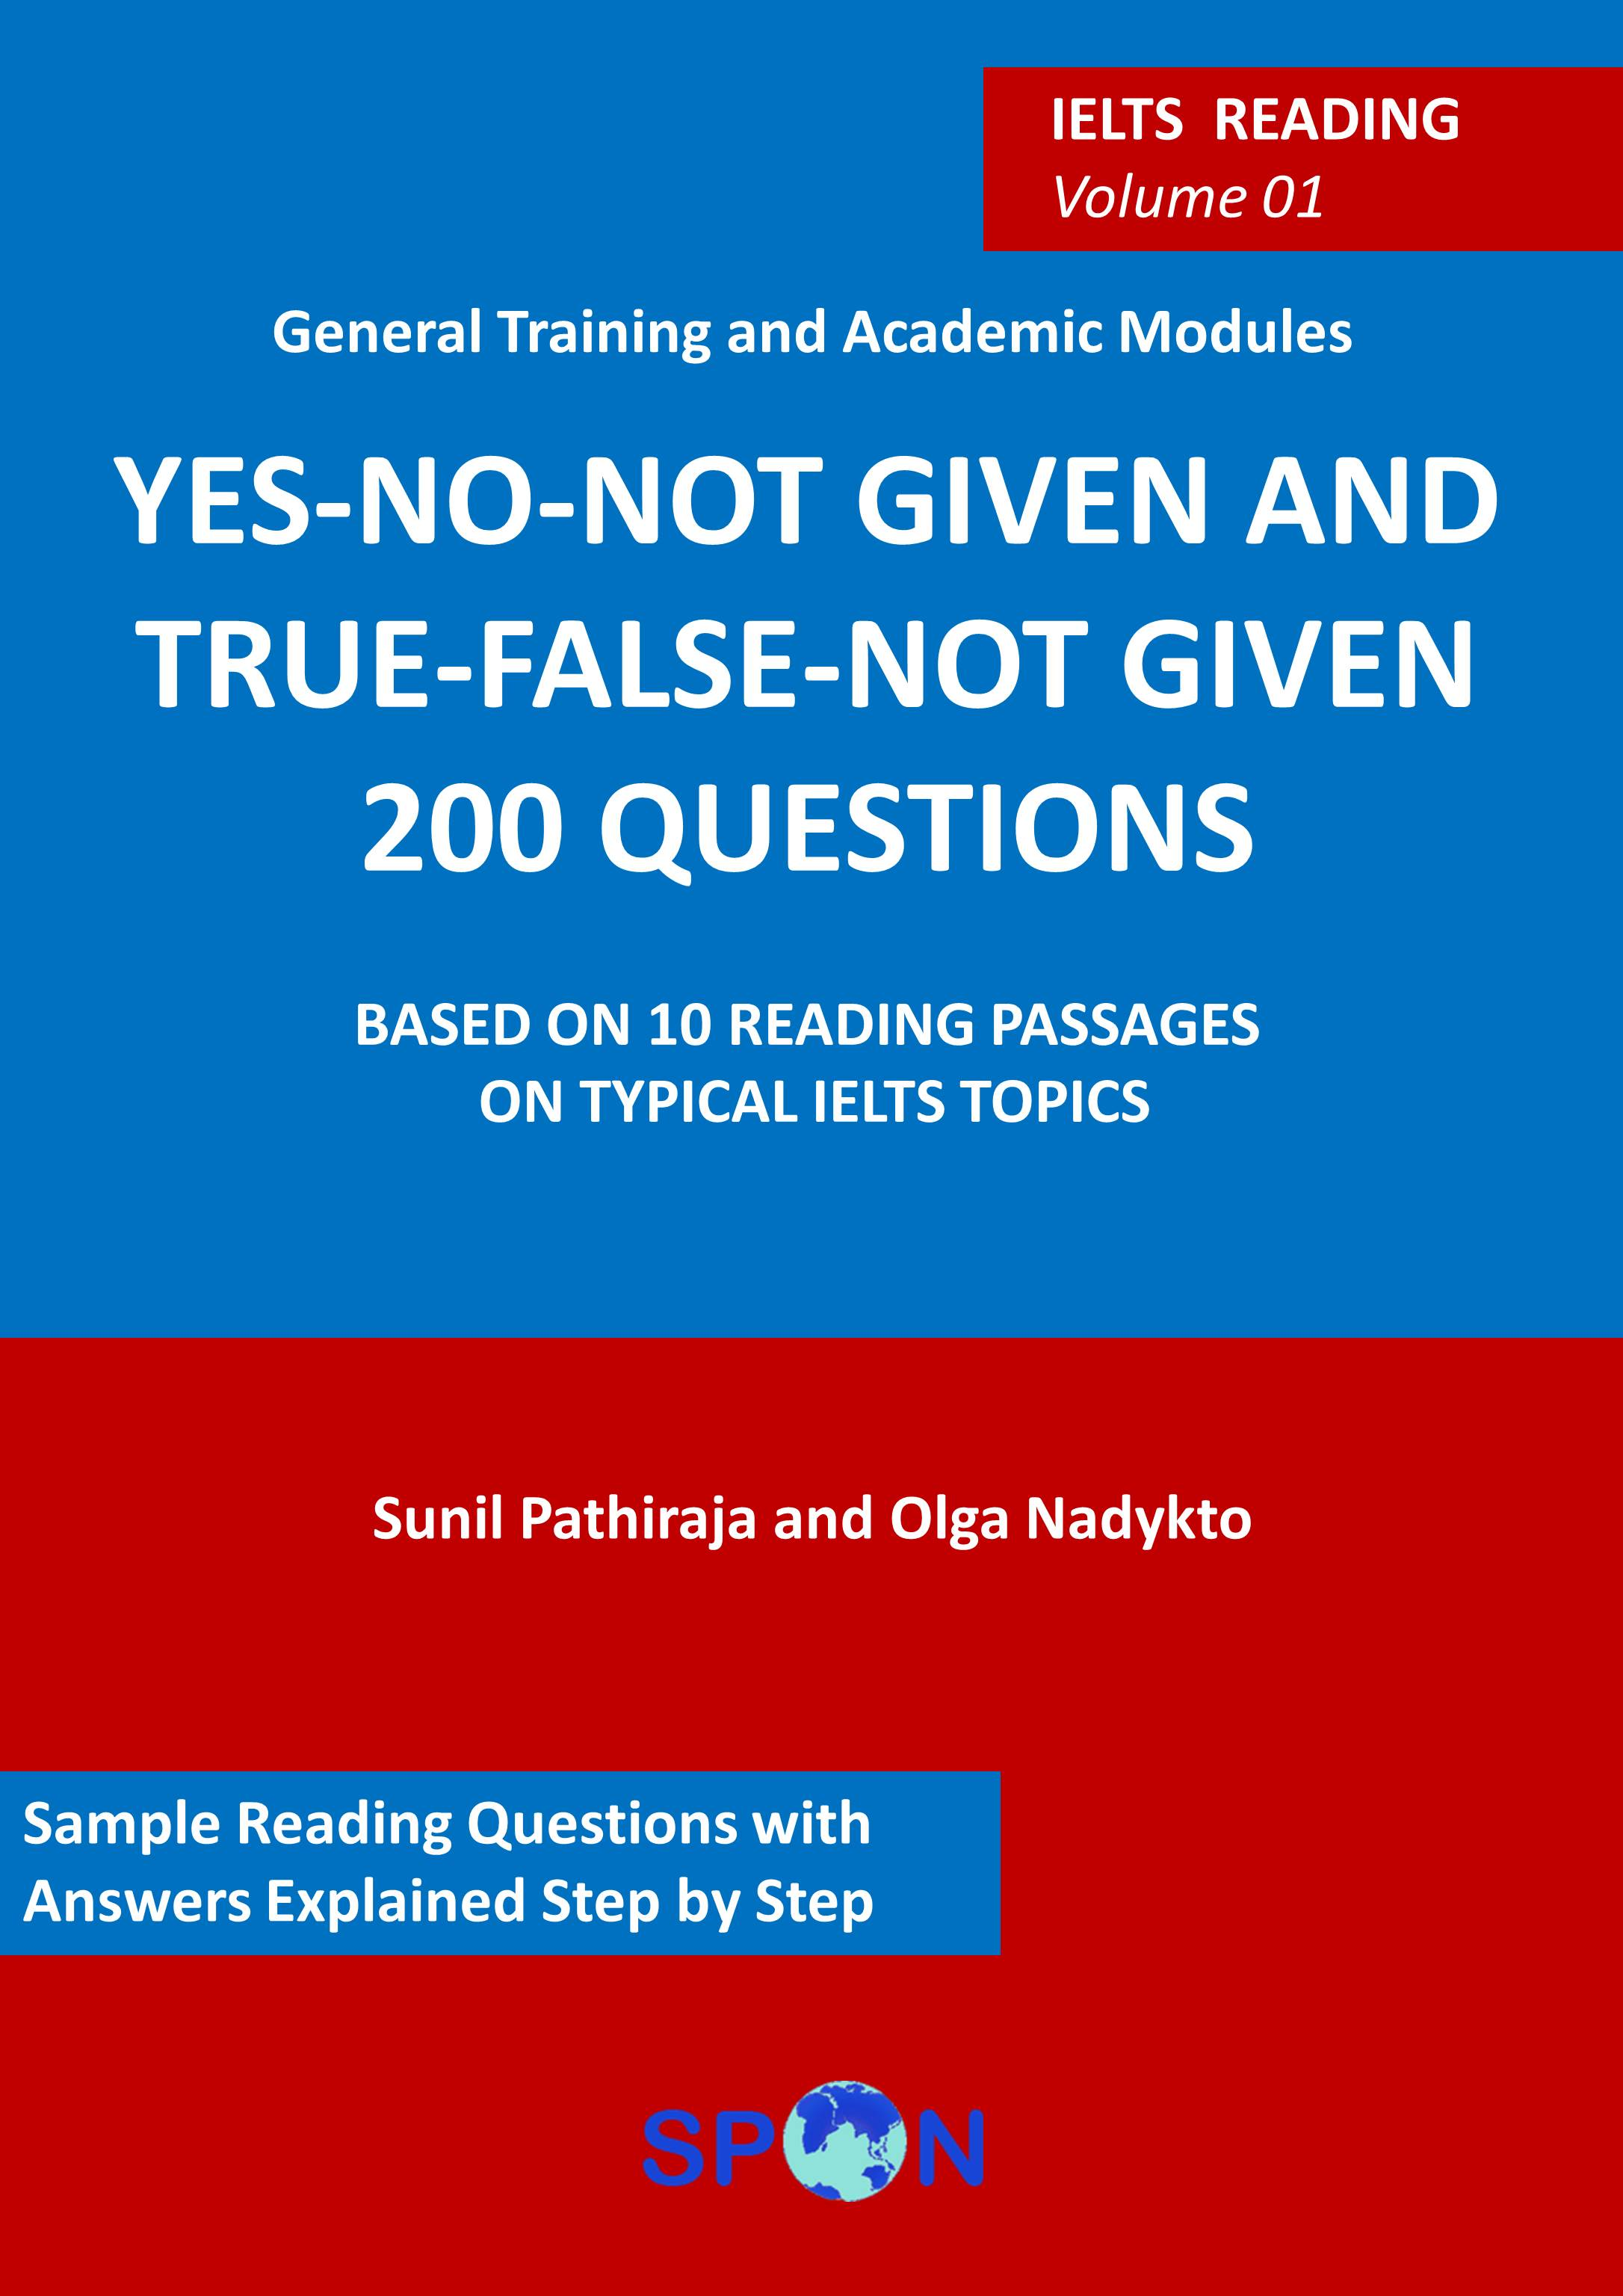 Sunil Pathiraja - IELTS reading: YES-NO-NOT GIVEN and TRUE-FALSE-NOT-GIVEN 200 questions: volume 01